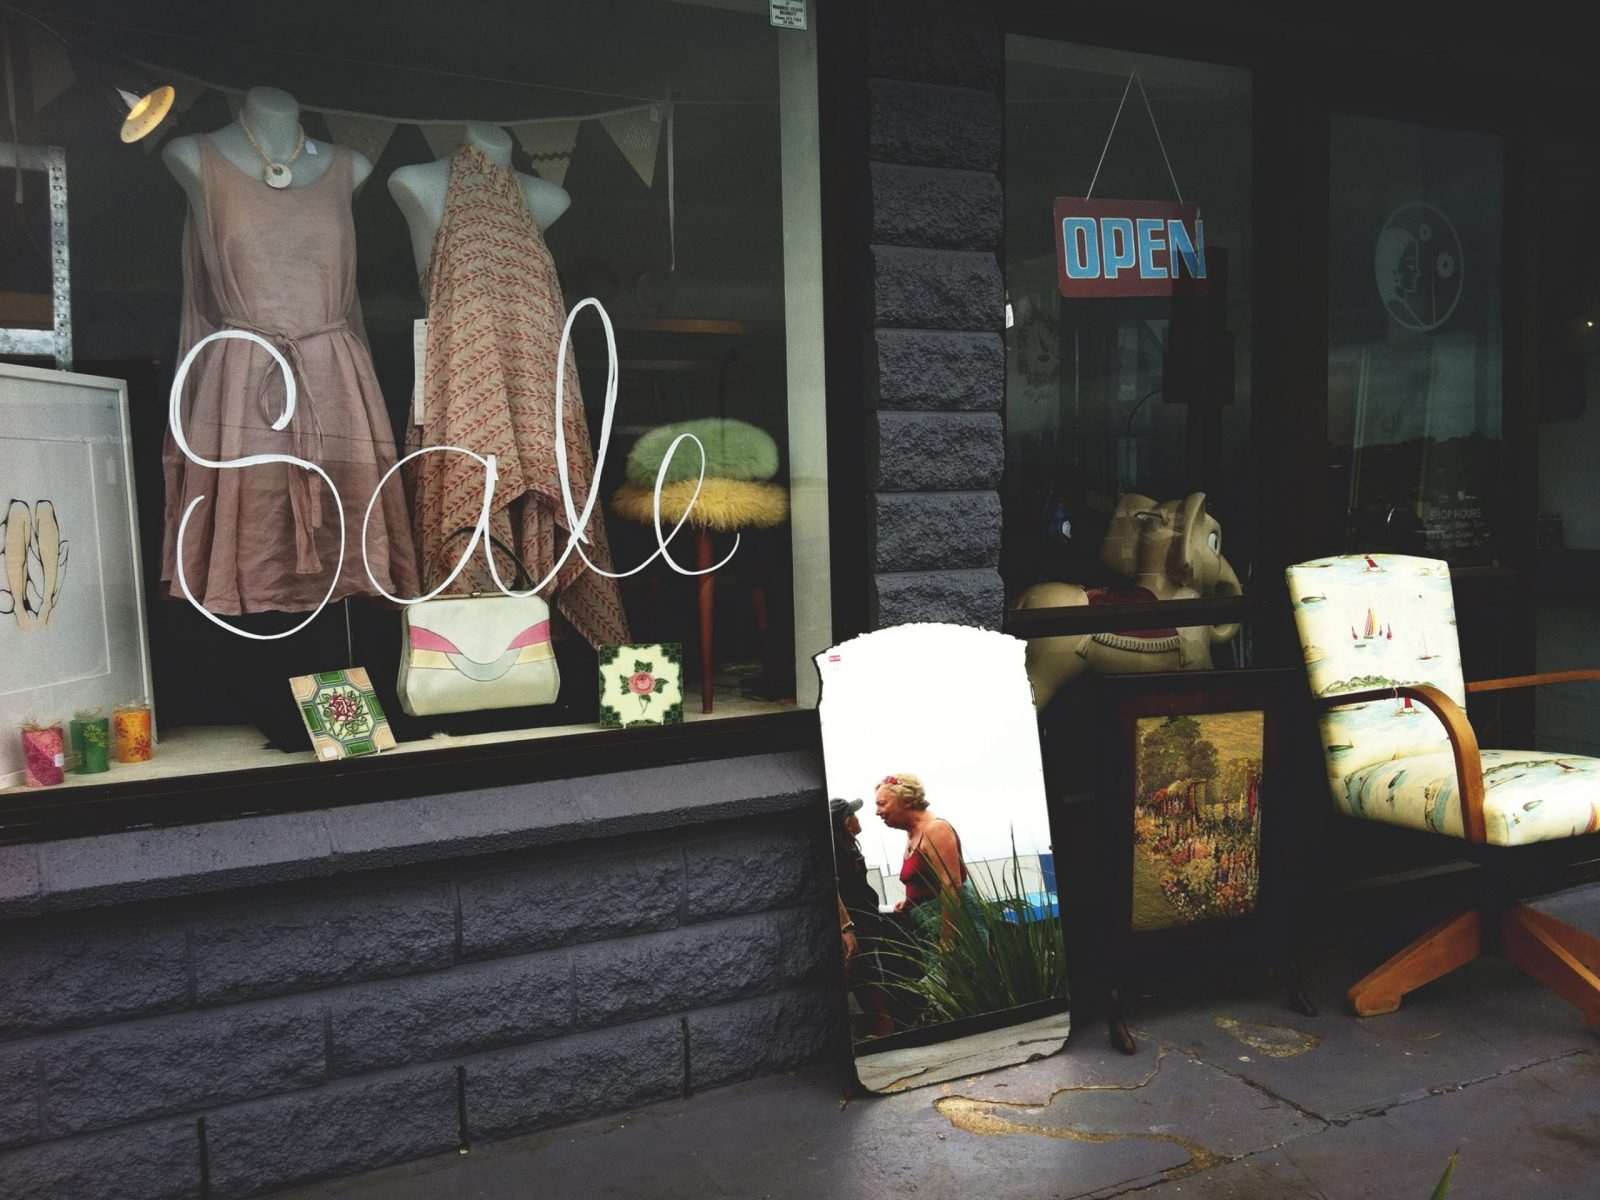 façade of a local business selling women's apparel; currently offering items on sale and looking for the best payment methods for small business